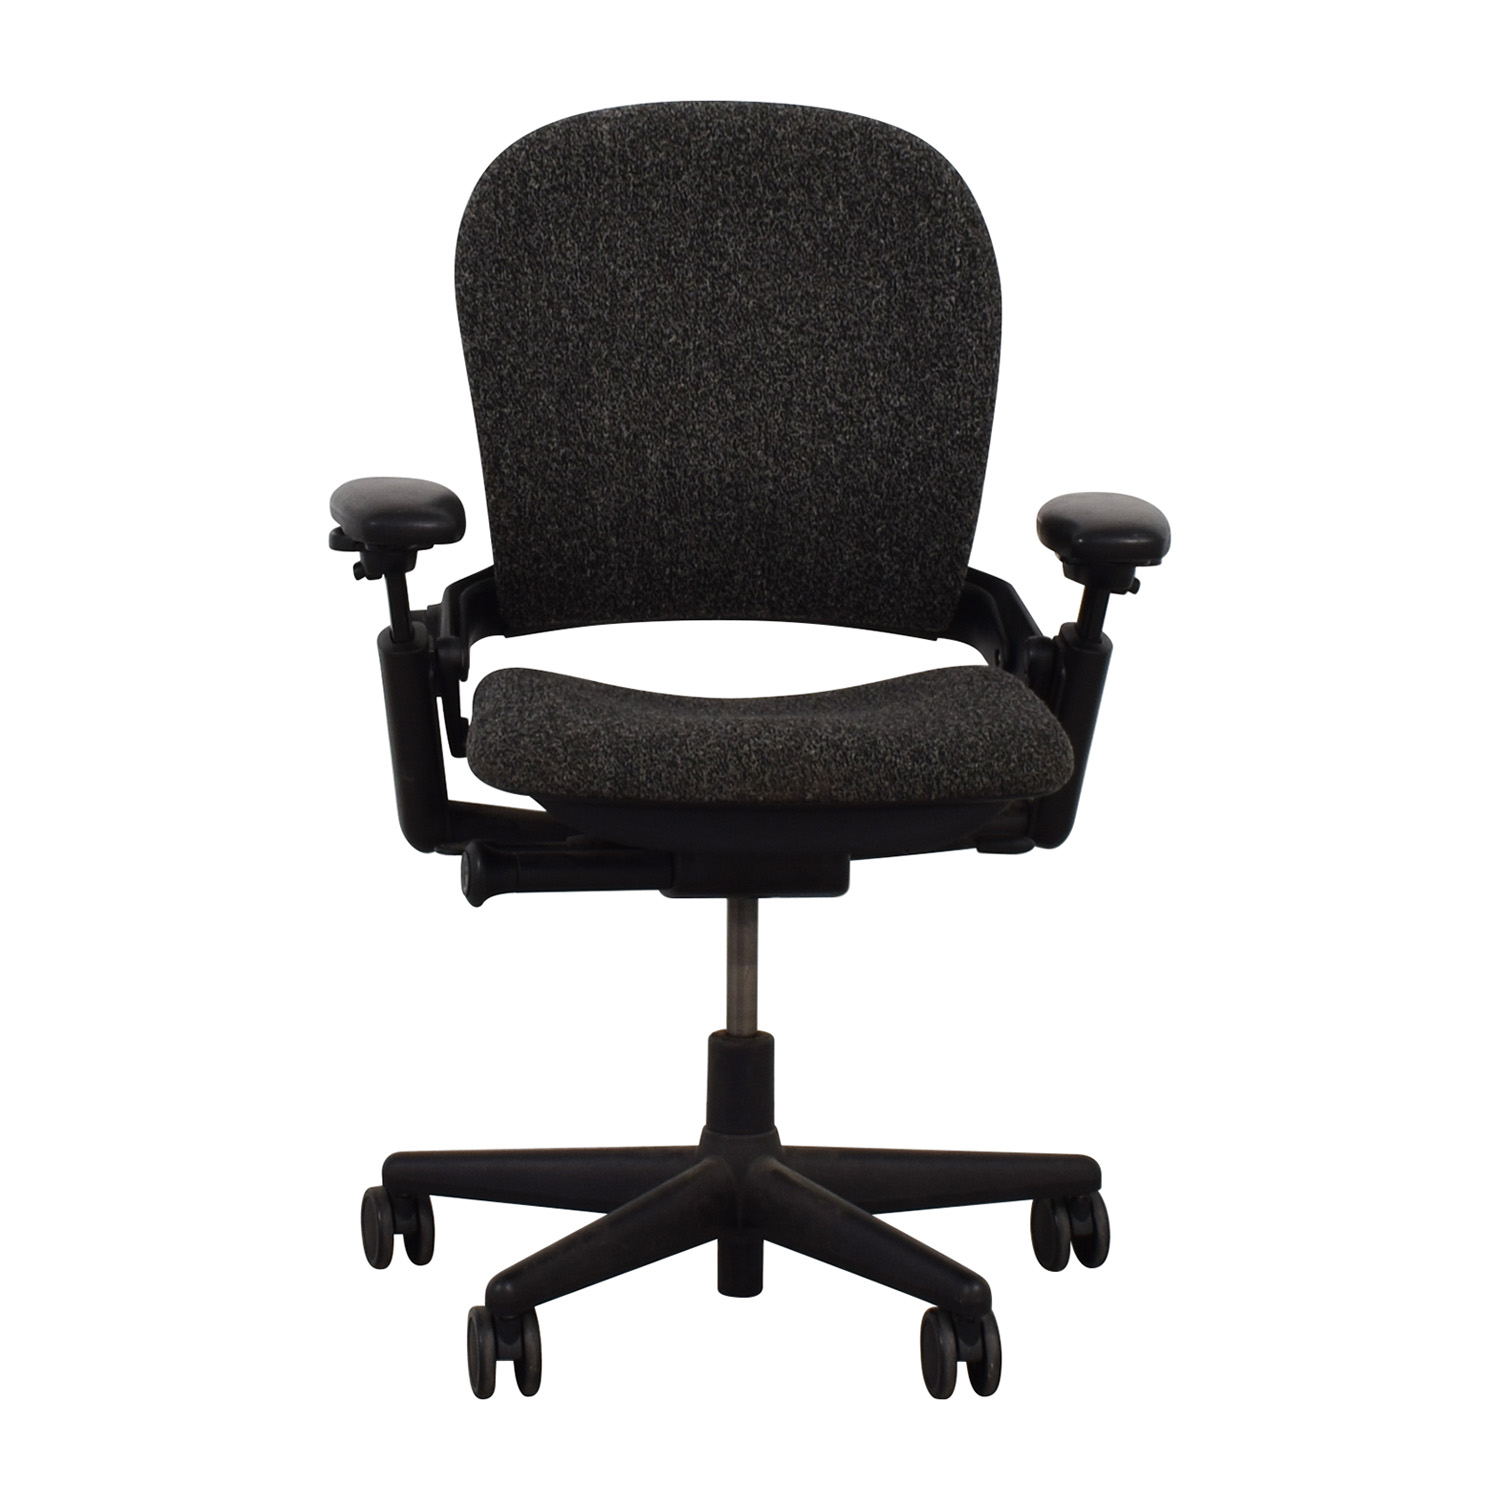 Steelcase Steelcase Office Chair price